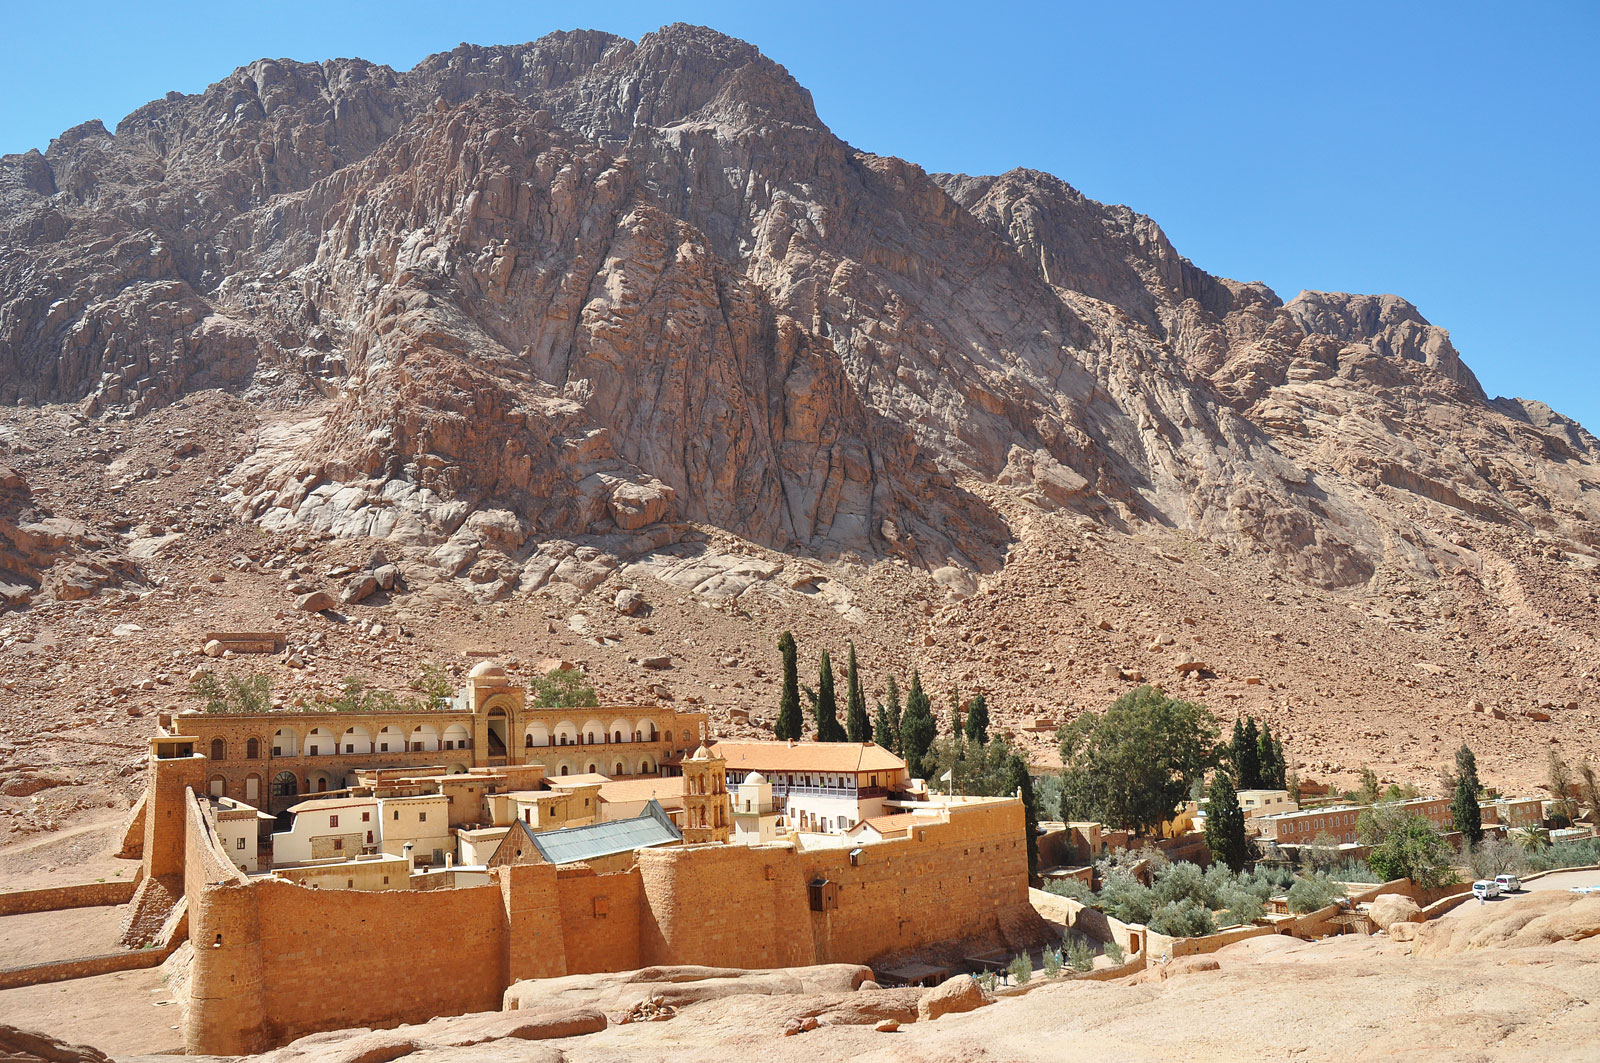 St. Catherine's Monastery: Friendship between Christians and Muslims